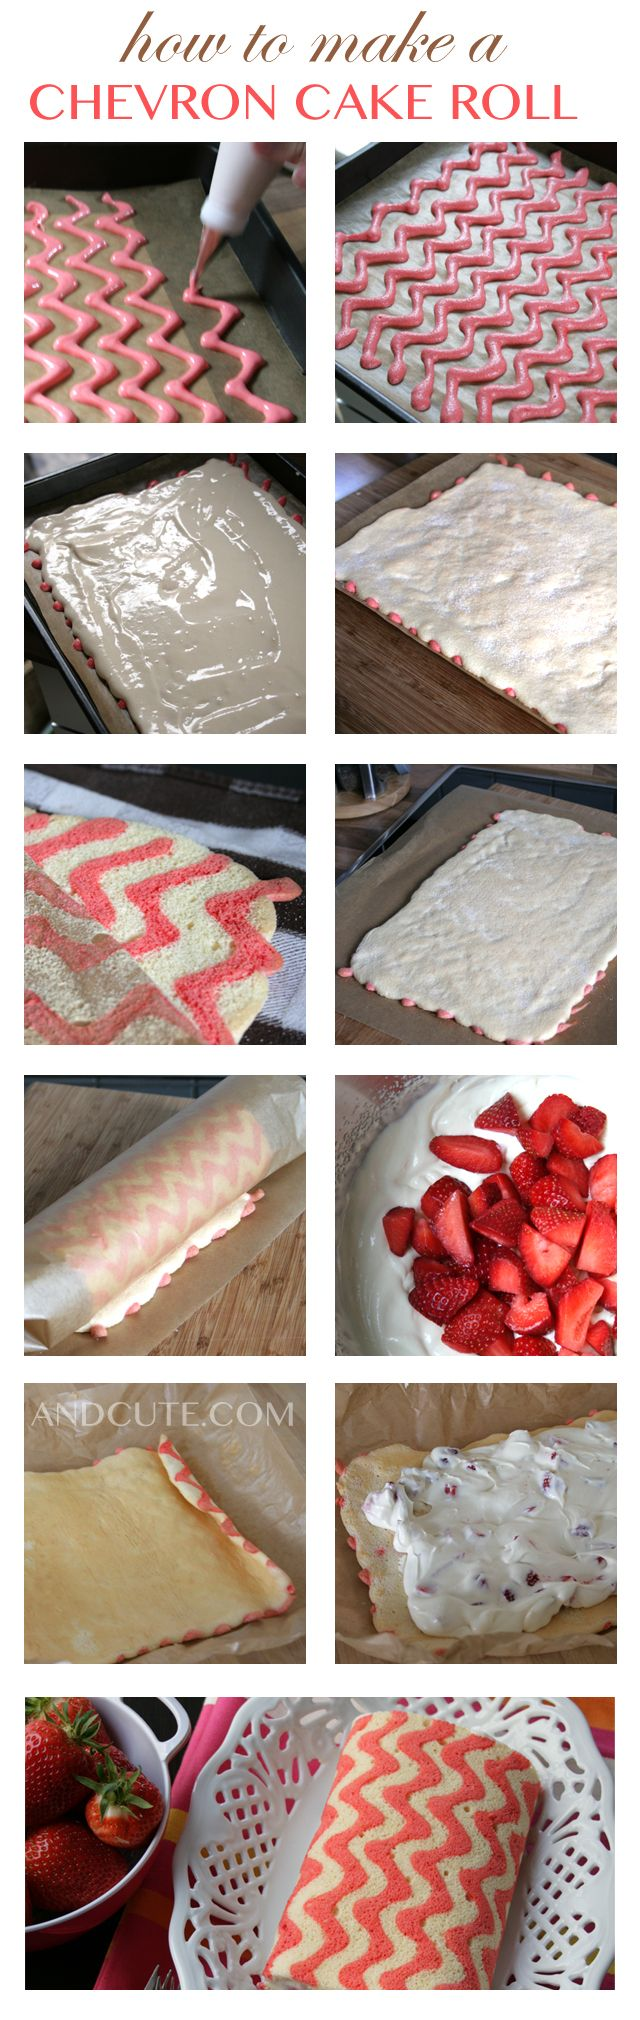 HOW TO: Chevron Cake Roll